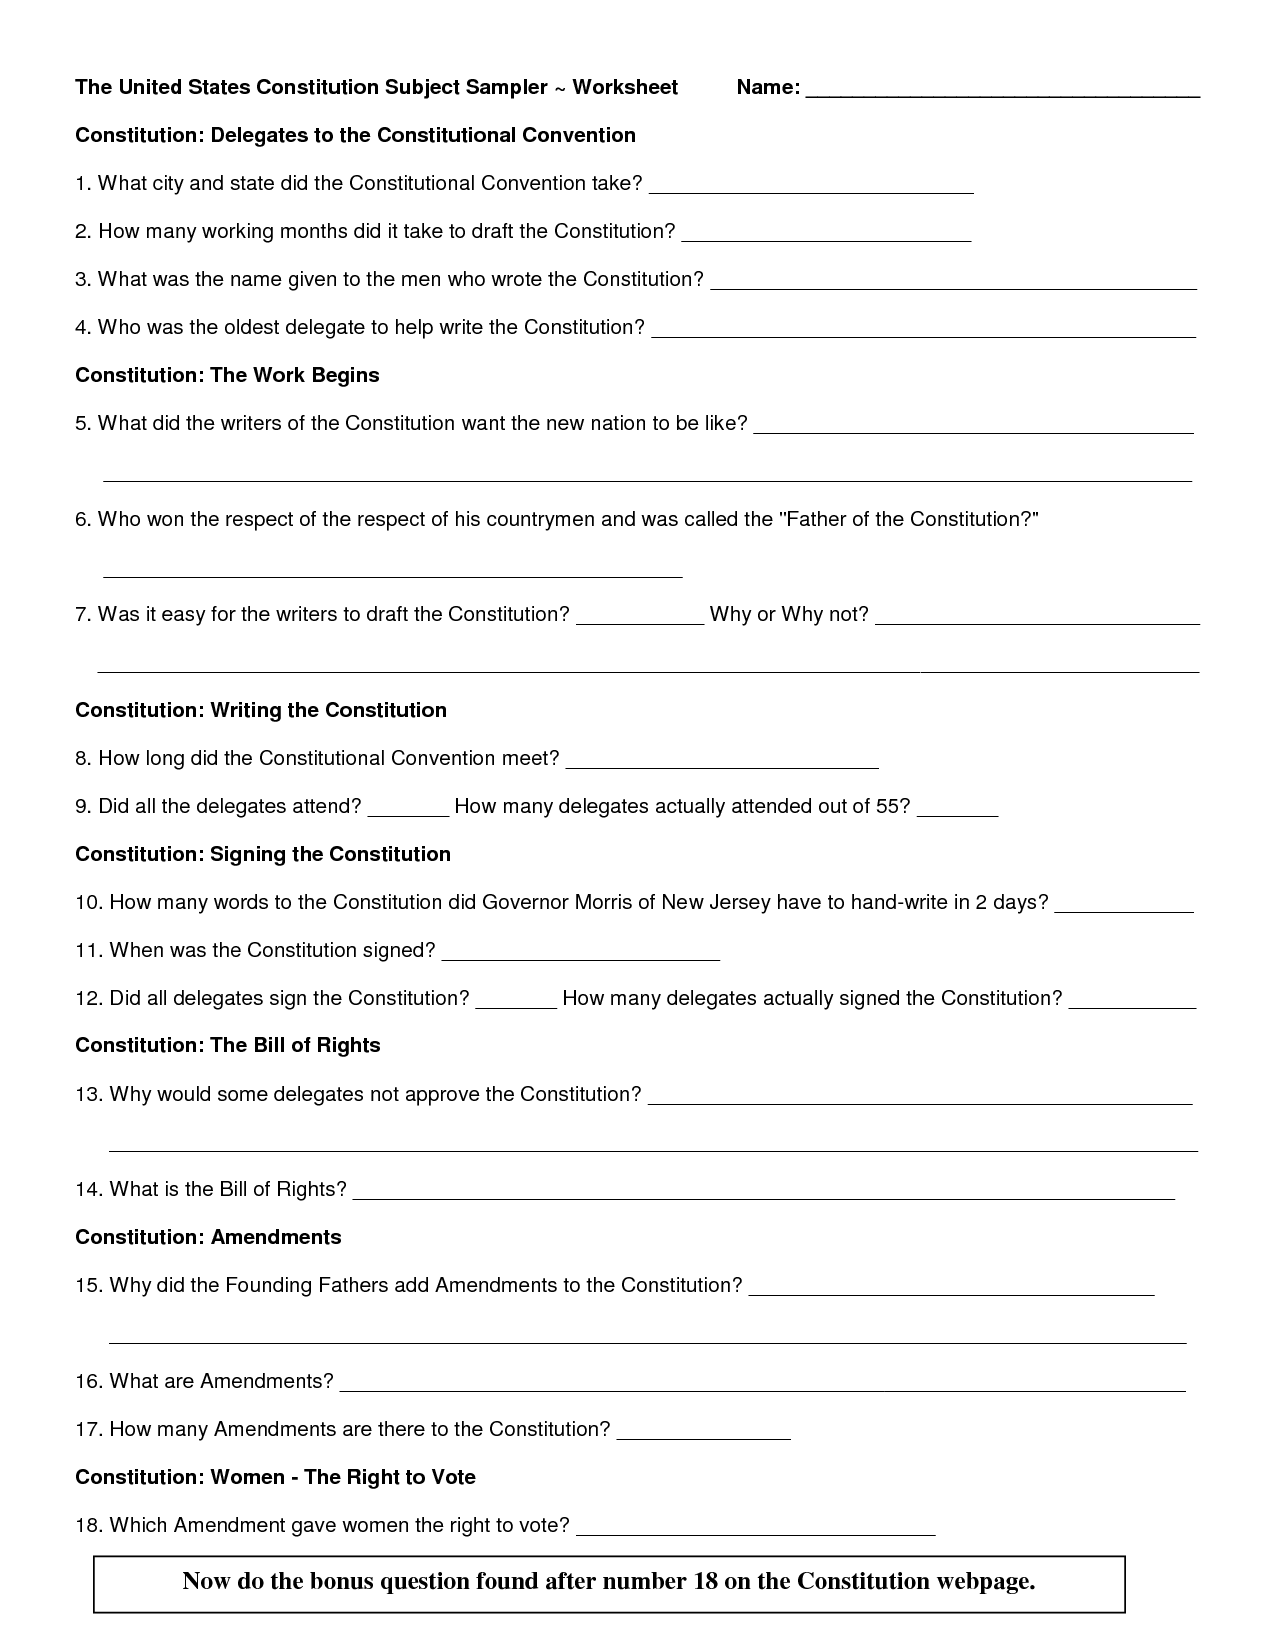 Preamble Of The Constitution Worksheet Preamble Worksheet